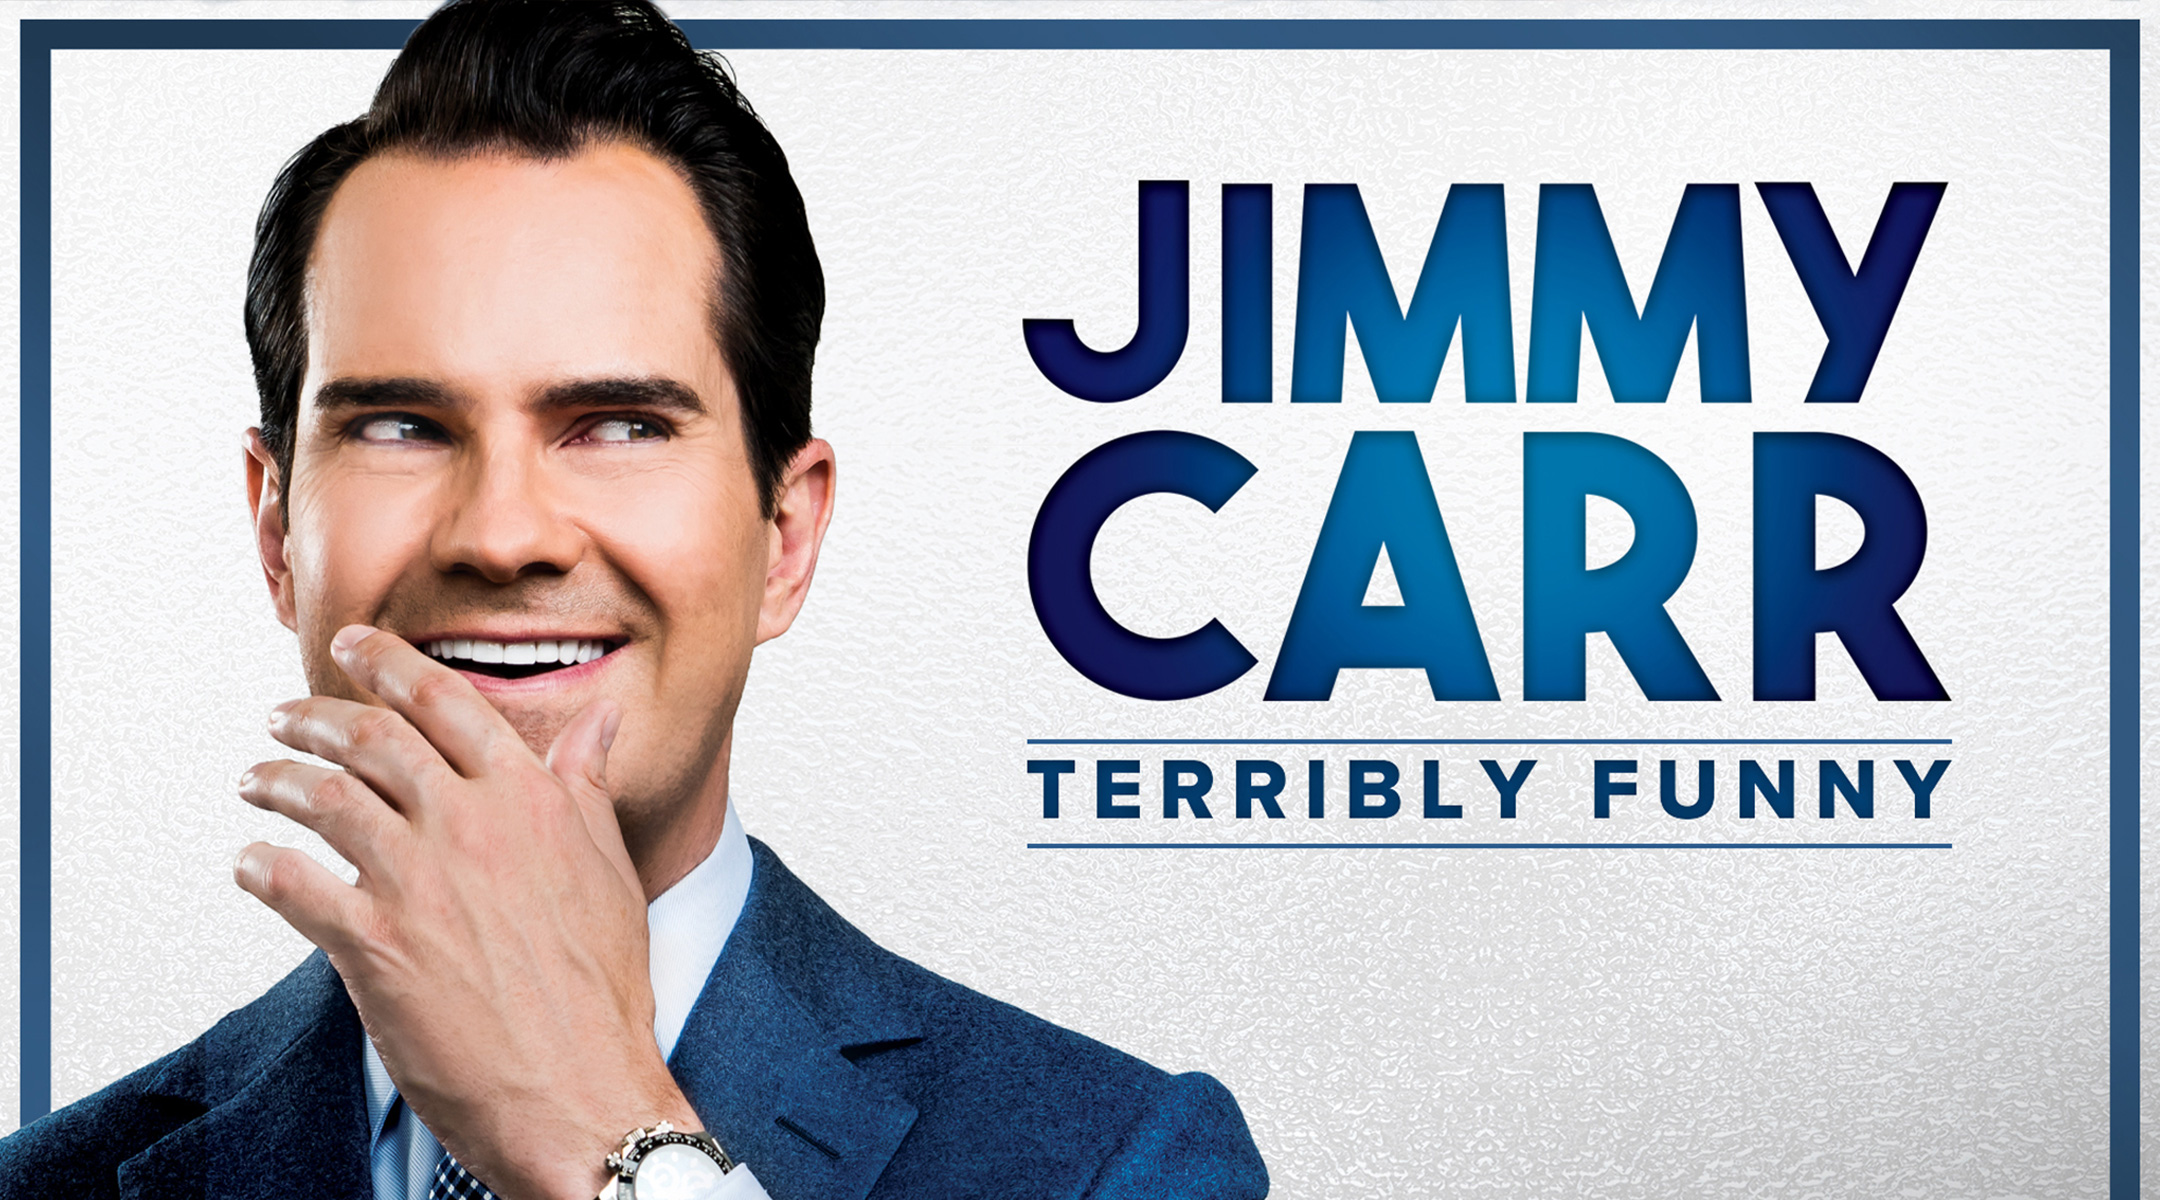 Jimmy Carr: Terribly Funny - Crawley - 3rd